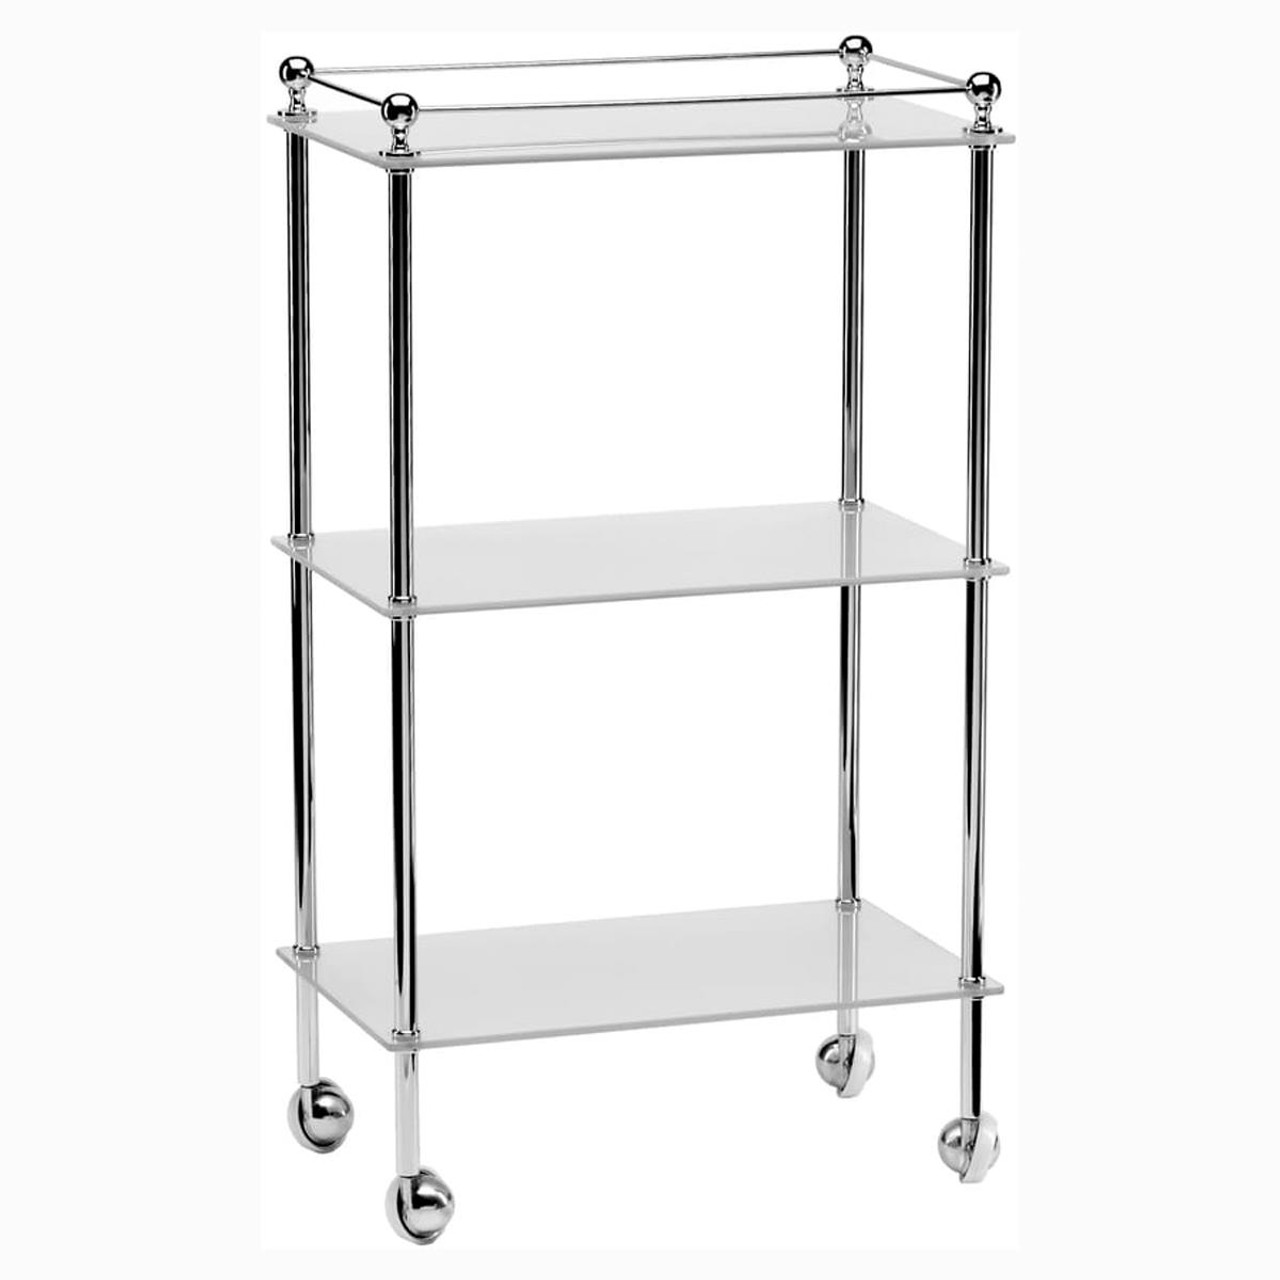 Chrome Plated Samuel Heath Freestanding Trolley L928